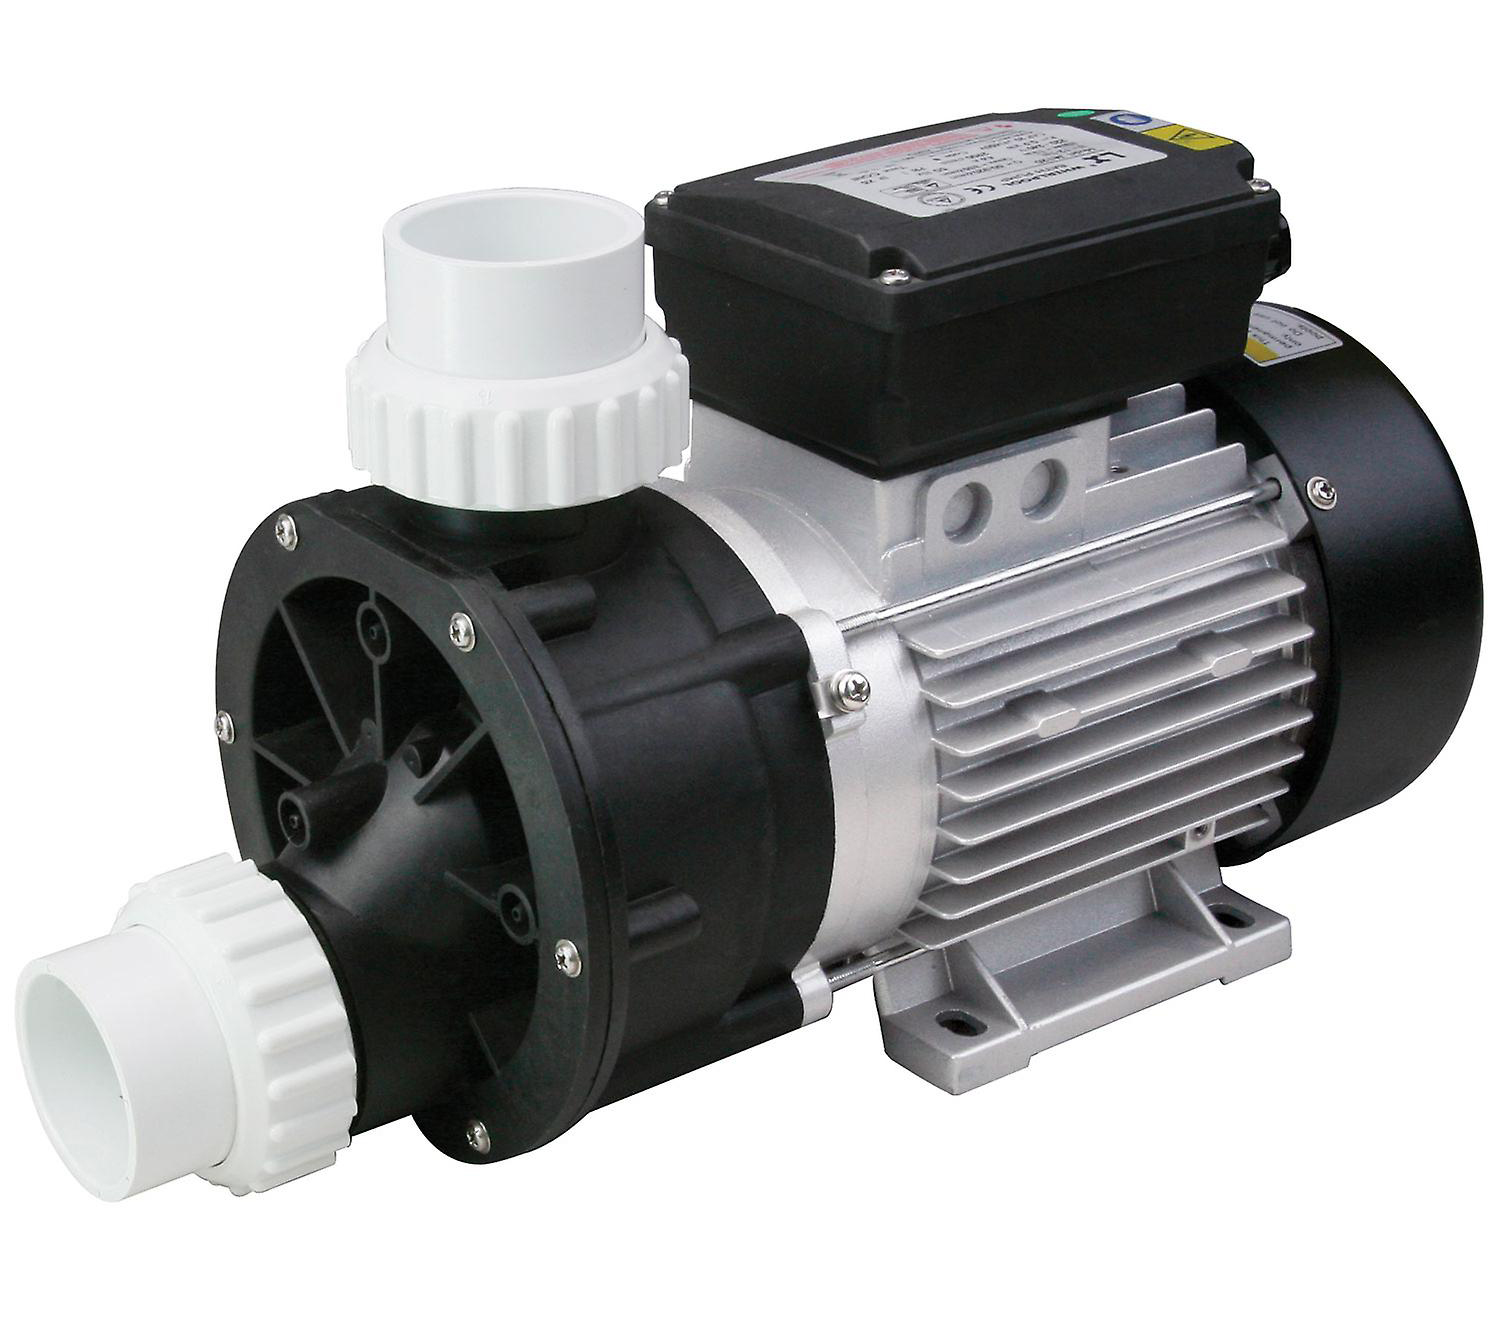 Bath Pump, Euro 50Hz, LX JA150, Front/Top, 1Sp, 1.5HP, 230V/50hZ, 5.8A